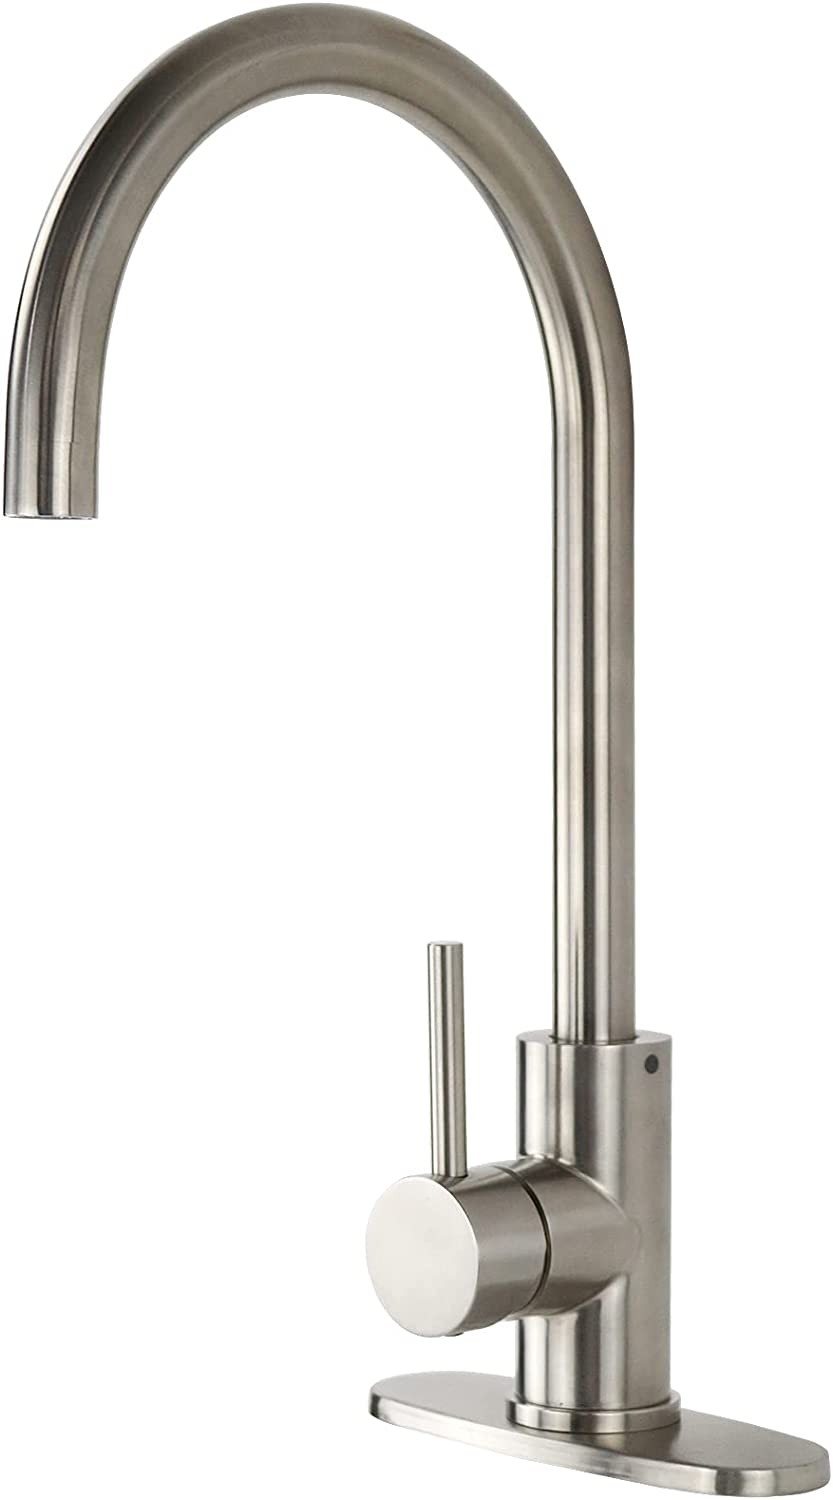 Cheap super special price YooGyy Commercial Stainless Steel Kitchen Faucet Ranking TOP17 Nickel Brushed